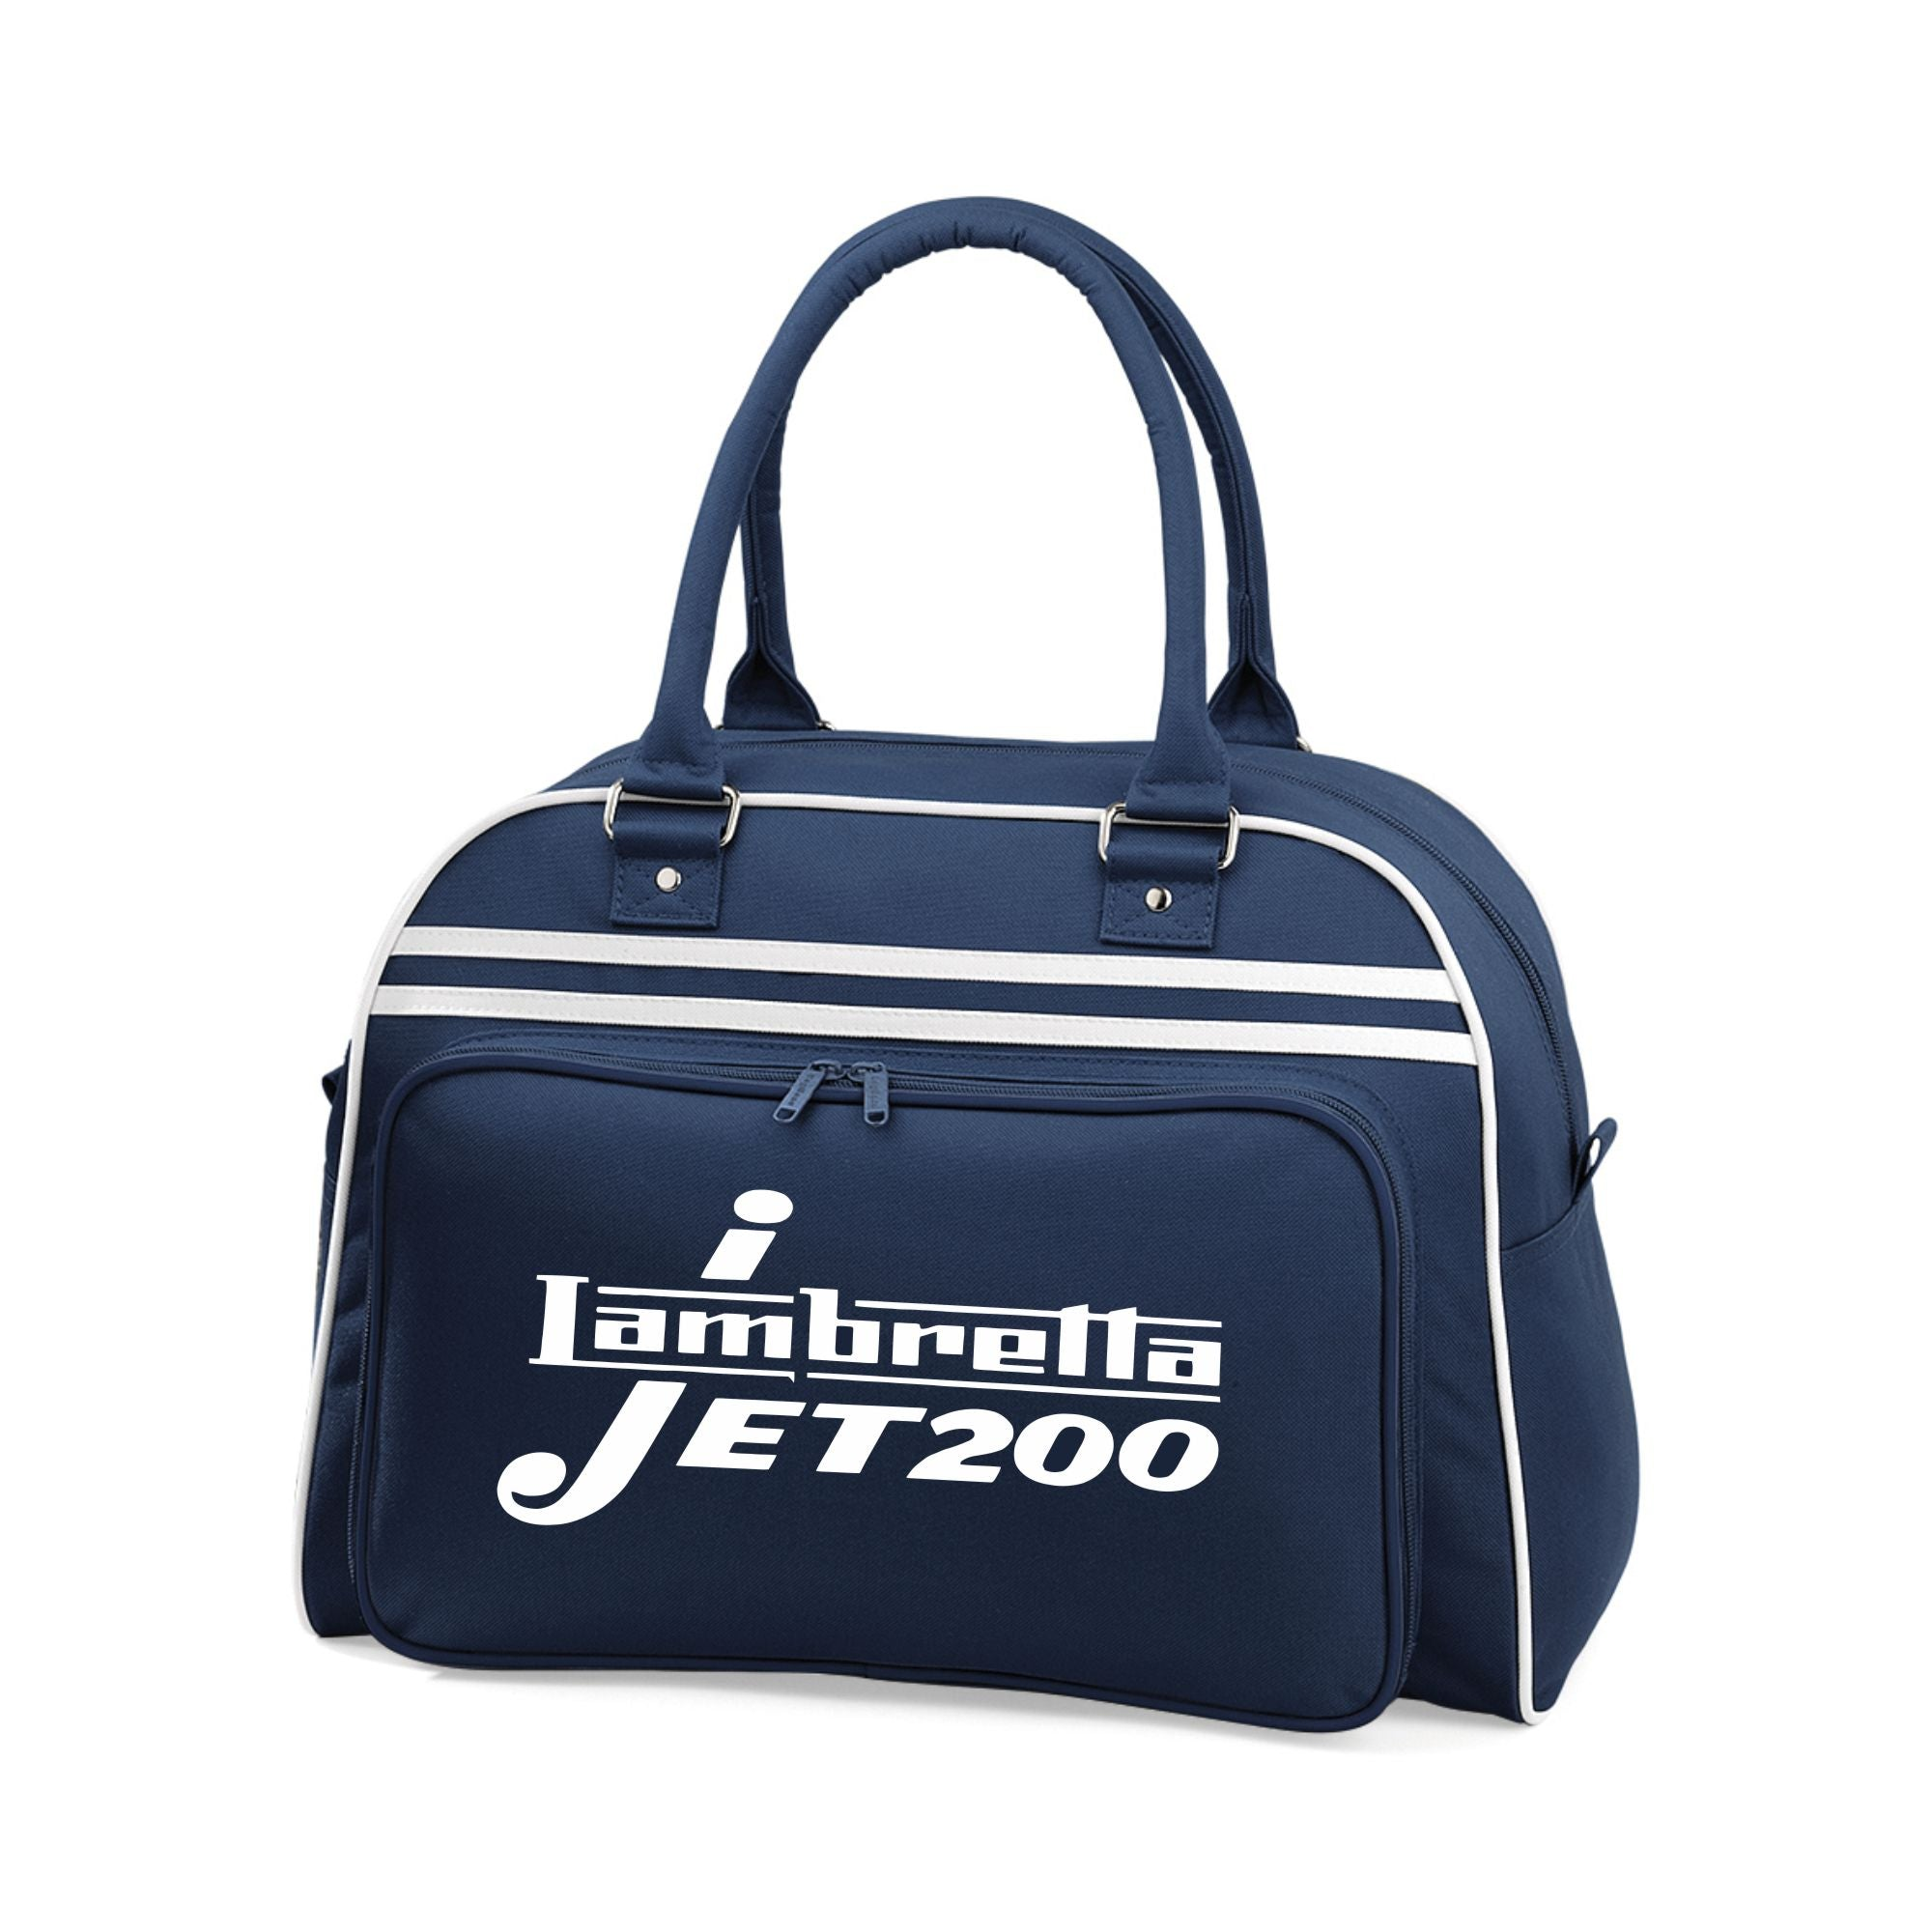 Lambretta Jet 200 Bowling Bag - Comes In Navy/White, Red/White & Black/White - FREE UK POSTAGE !!